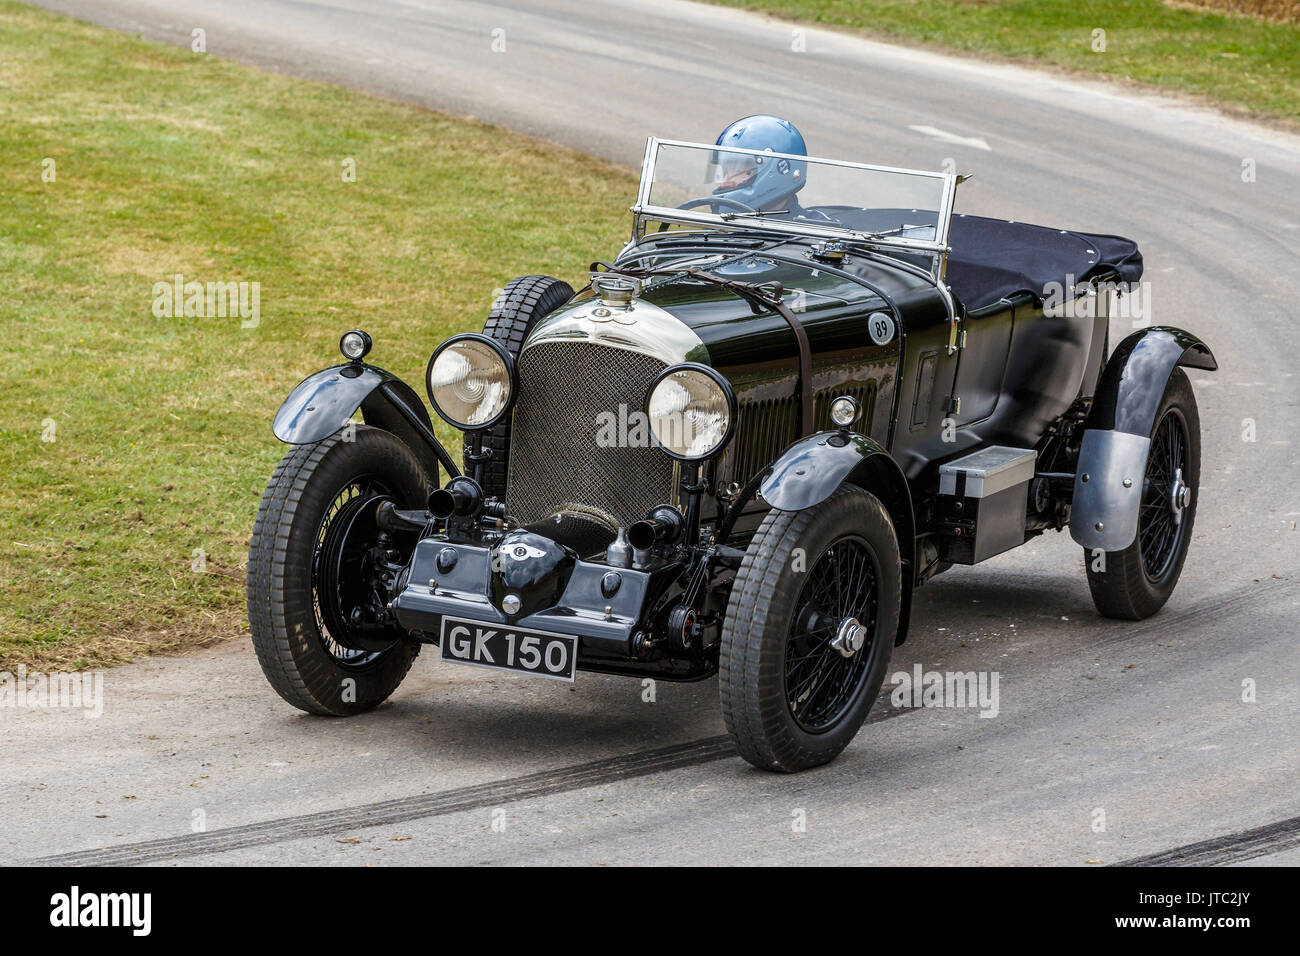 1930 Bentley 4 5 litre Supercharged endurance racer with